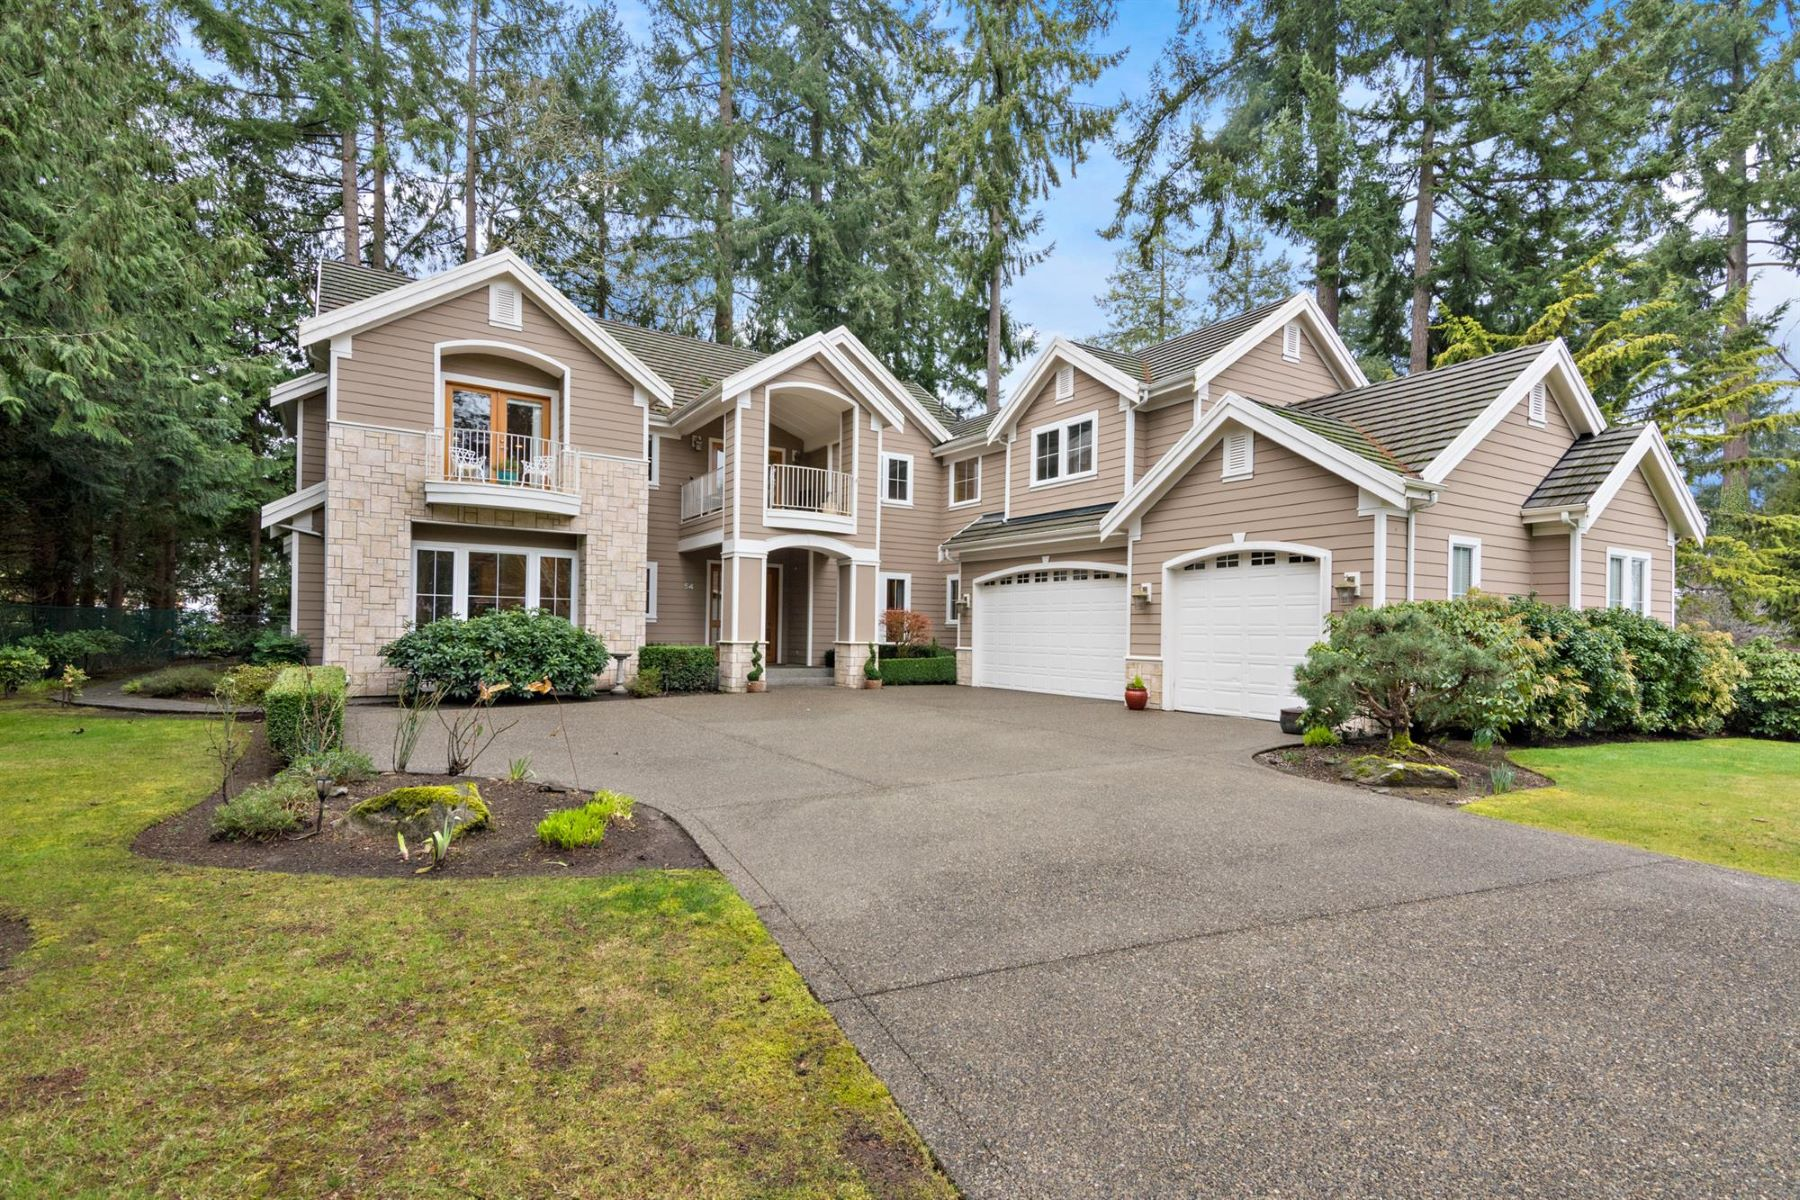 Single Family Home for Sale at 54 Country Club 54 Country Club Dr SW, Lakewood, Washington, 98498 United States